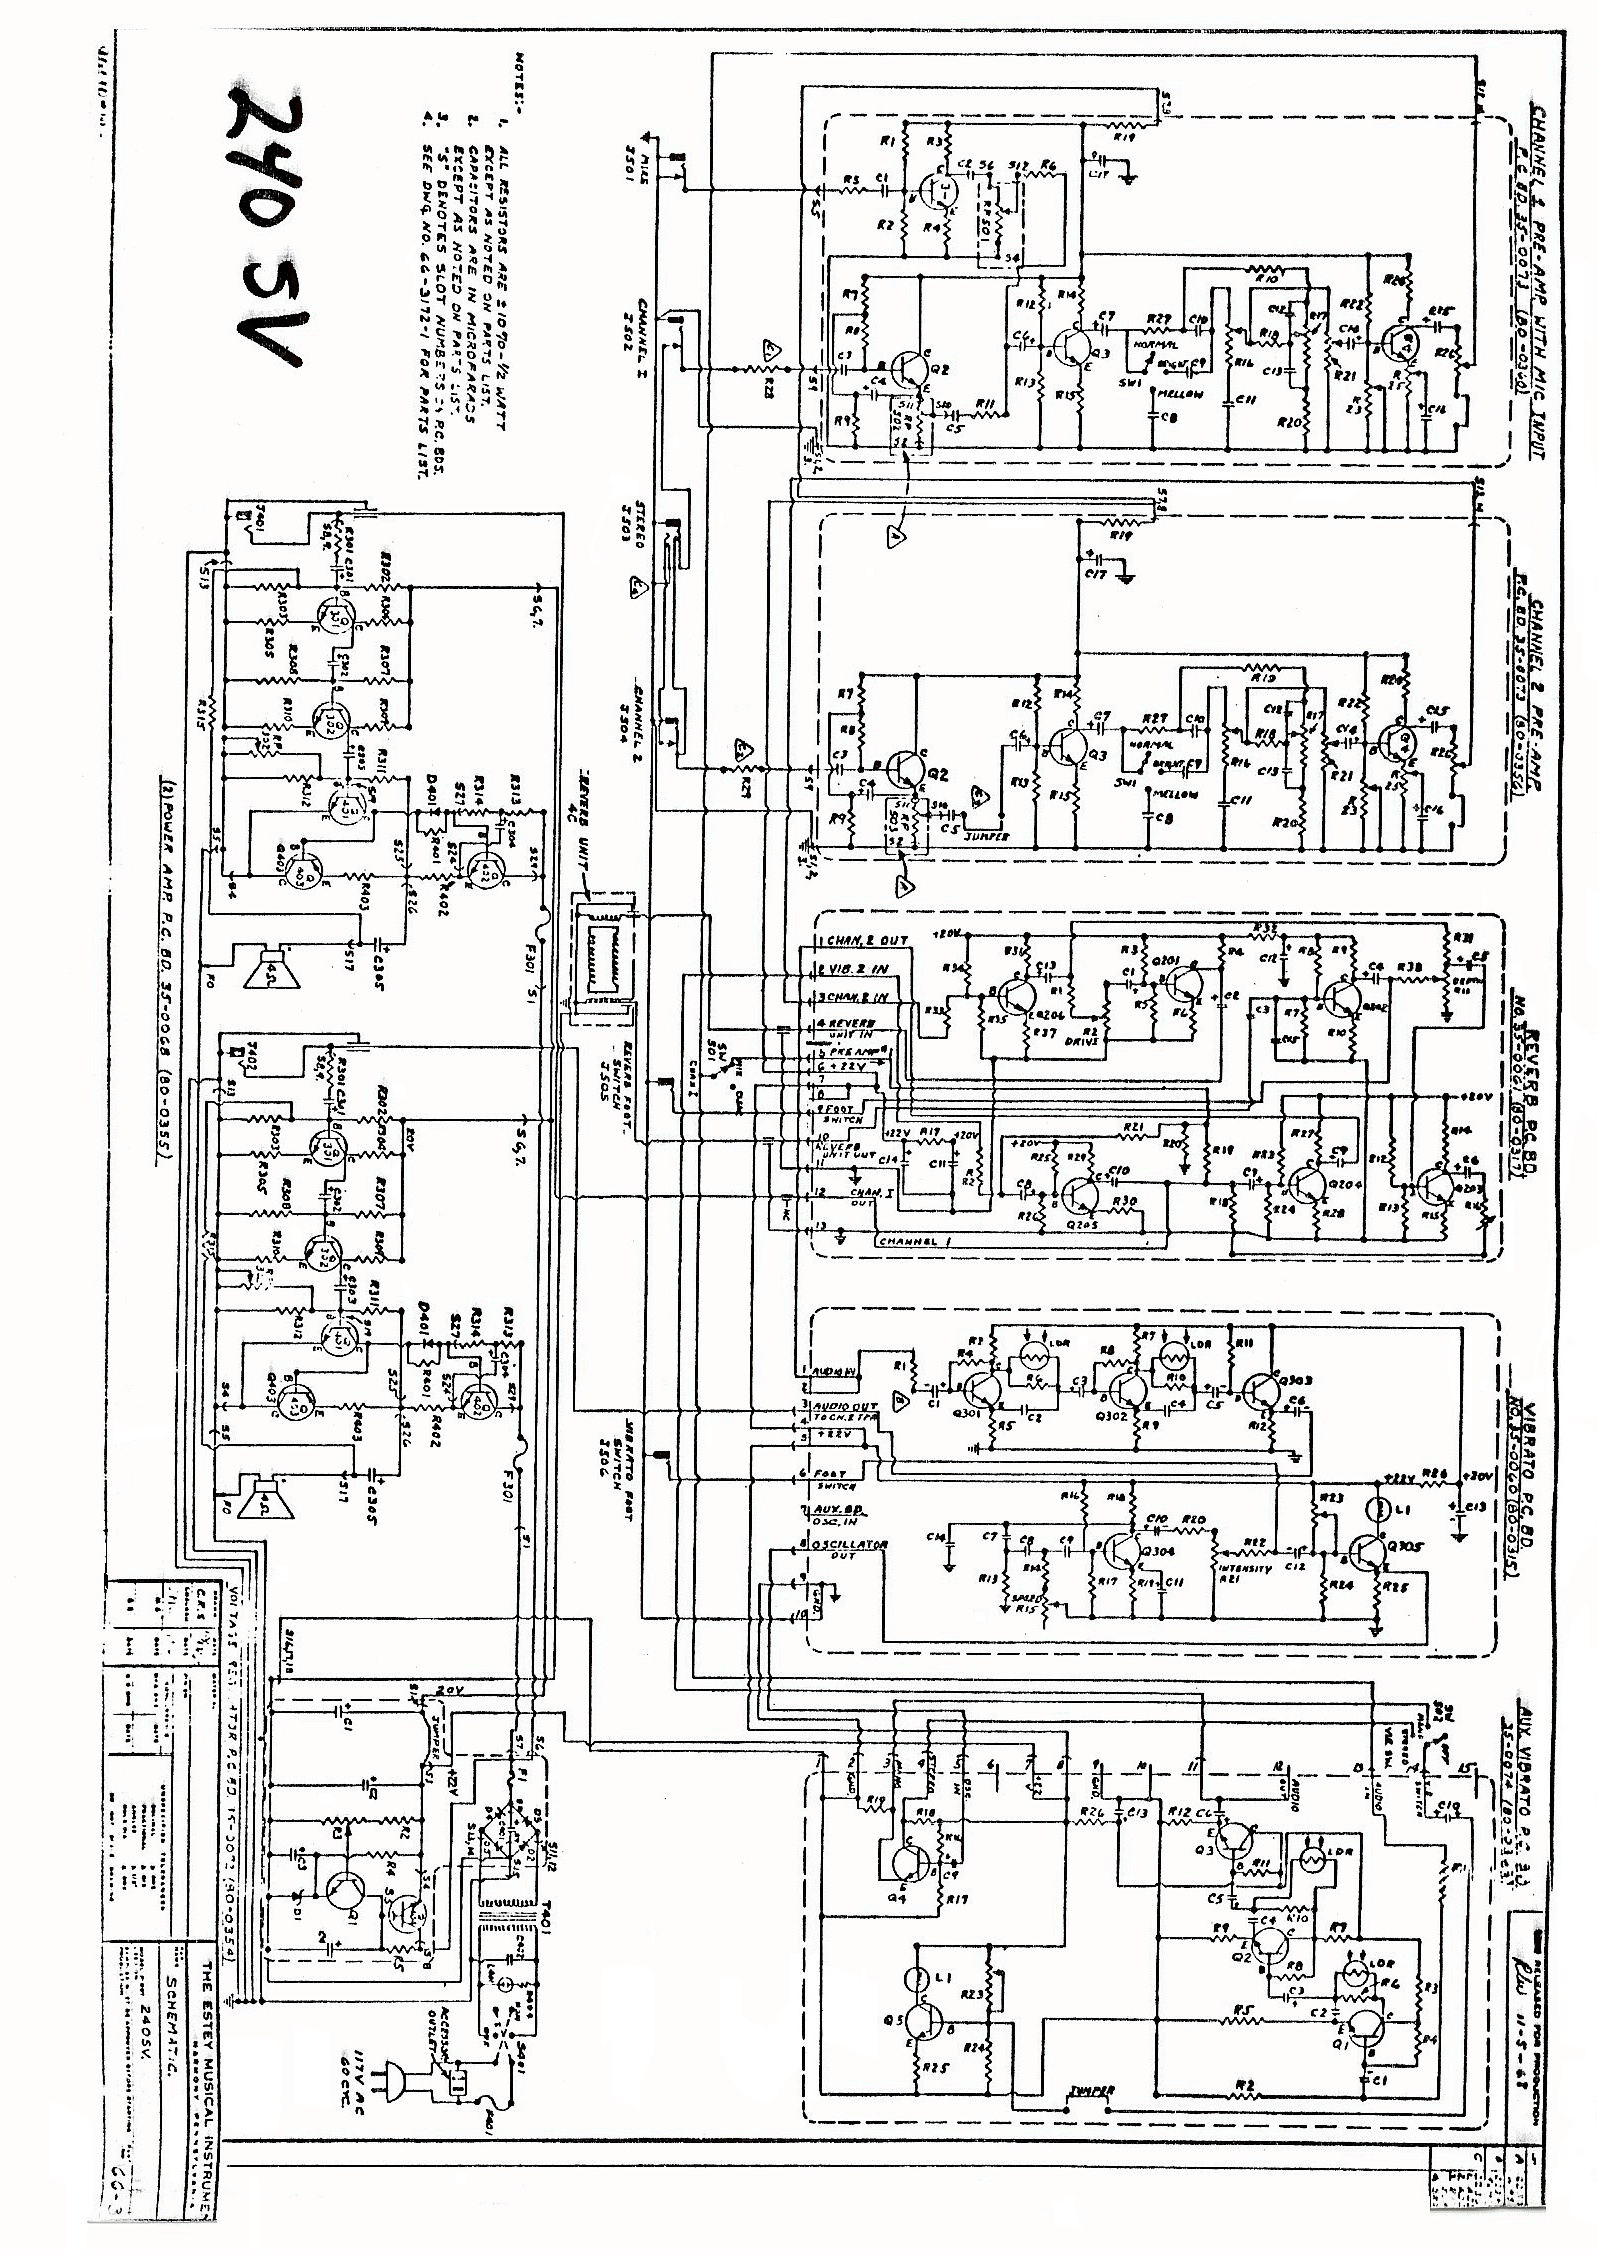 Luxury Peavey Rockmaster Schematic Gallery - Electrical Diagram ...